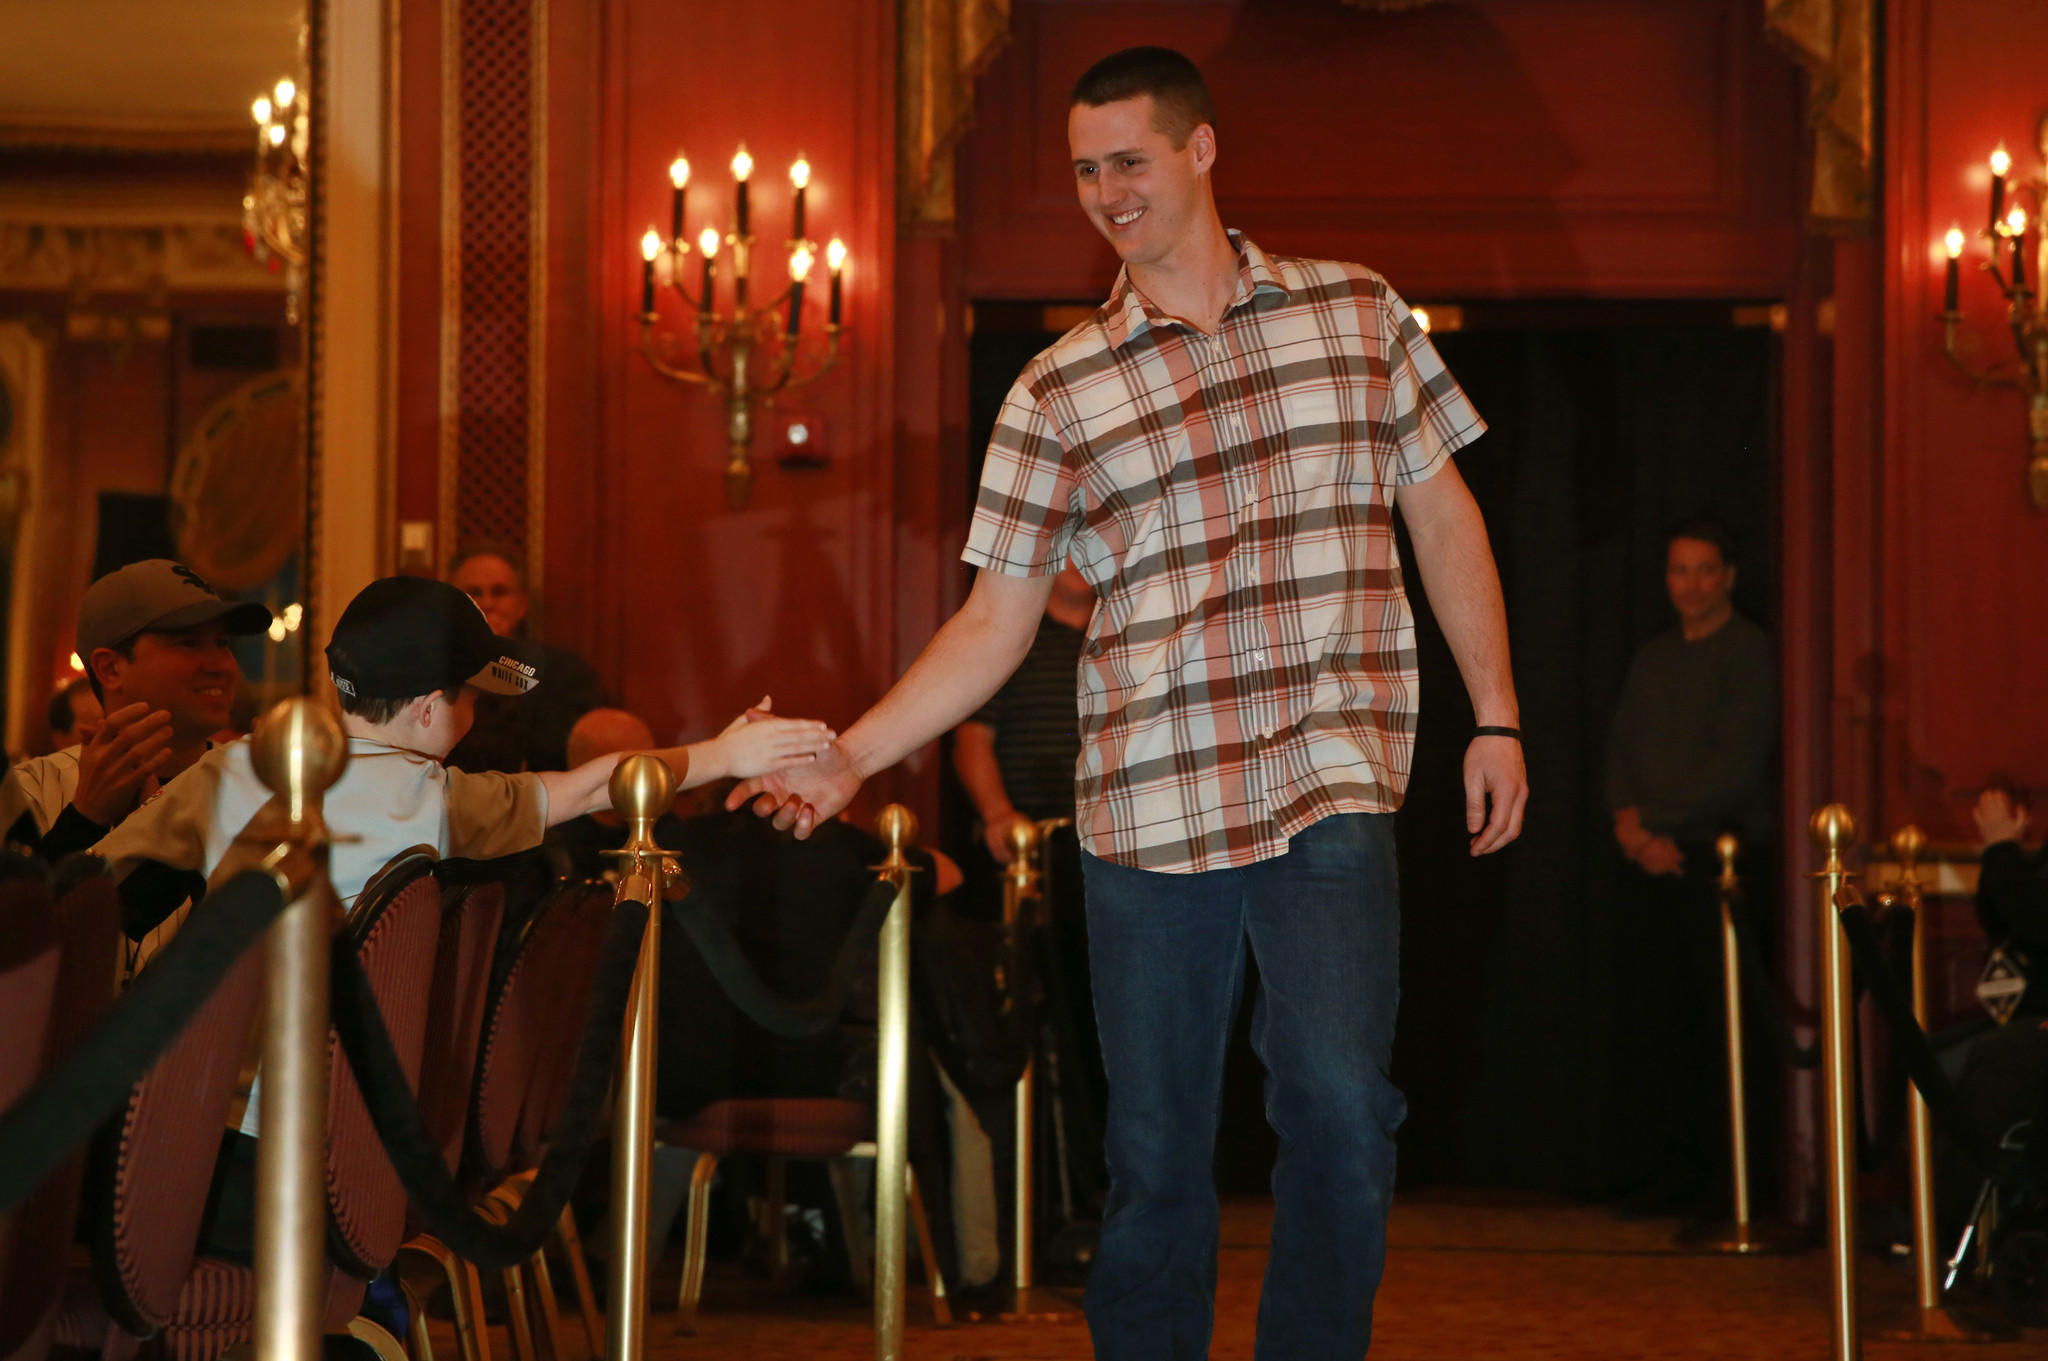 Nate Jones is introduced at the opening ceremony during Sox Fest at the Palmer House Hilton Friday, Jan. 24, 2014, in Chicago.